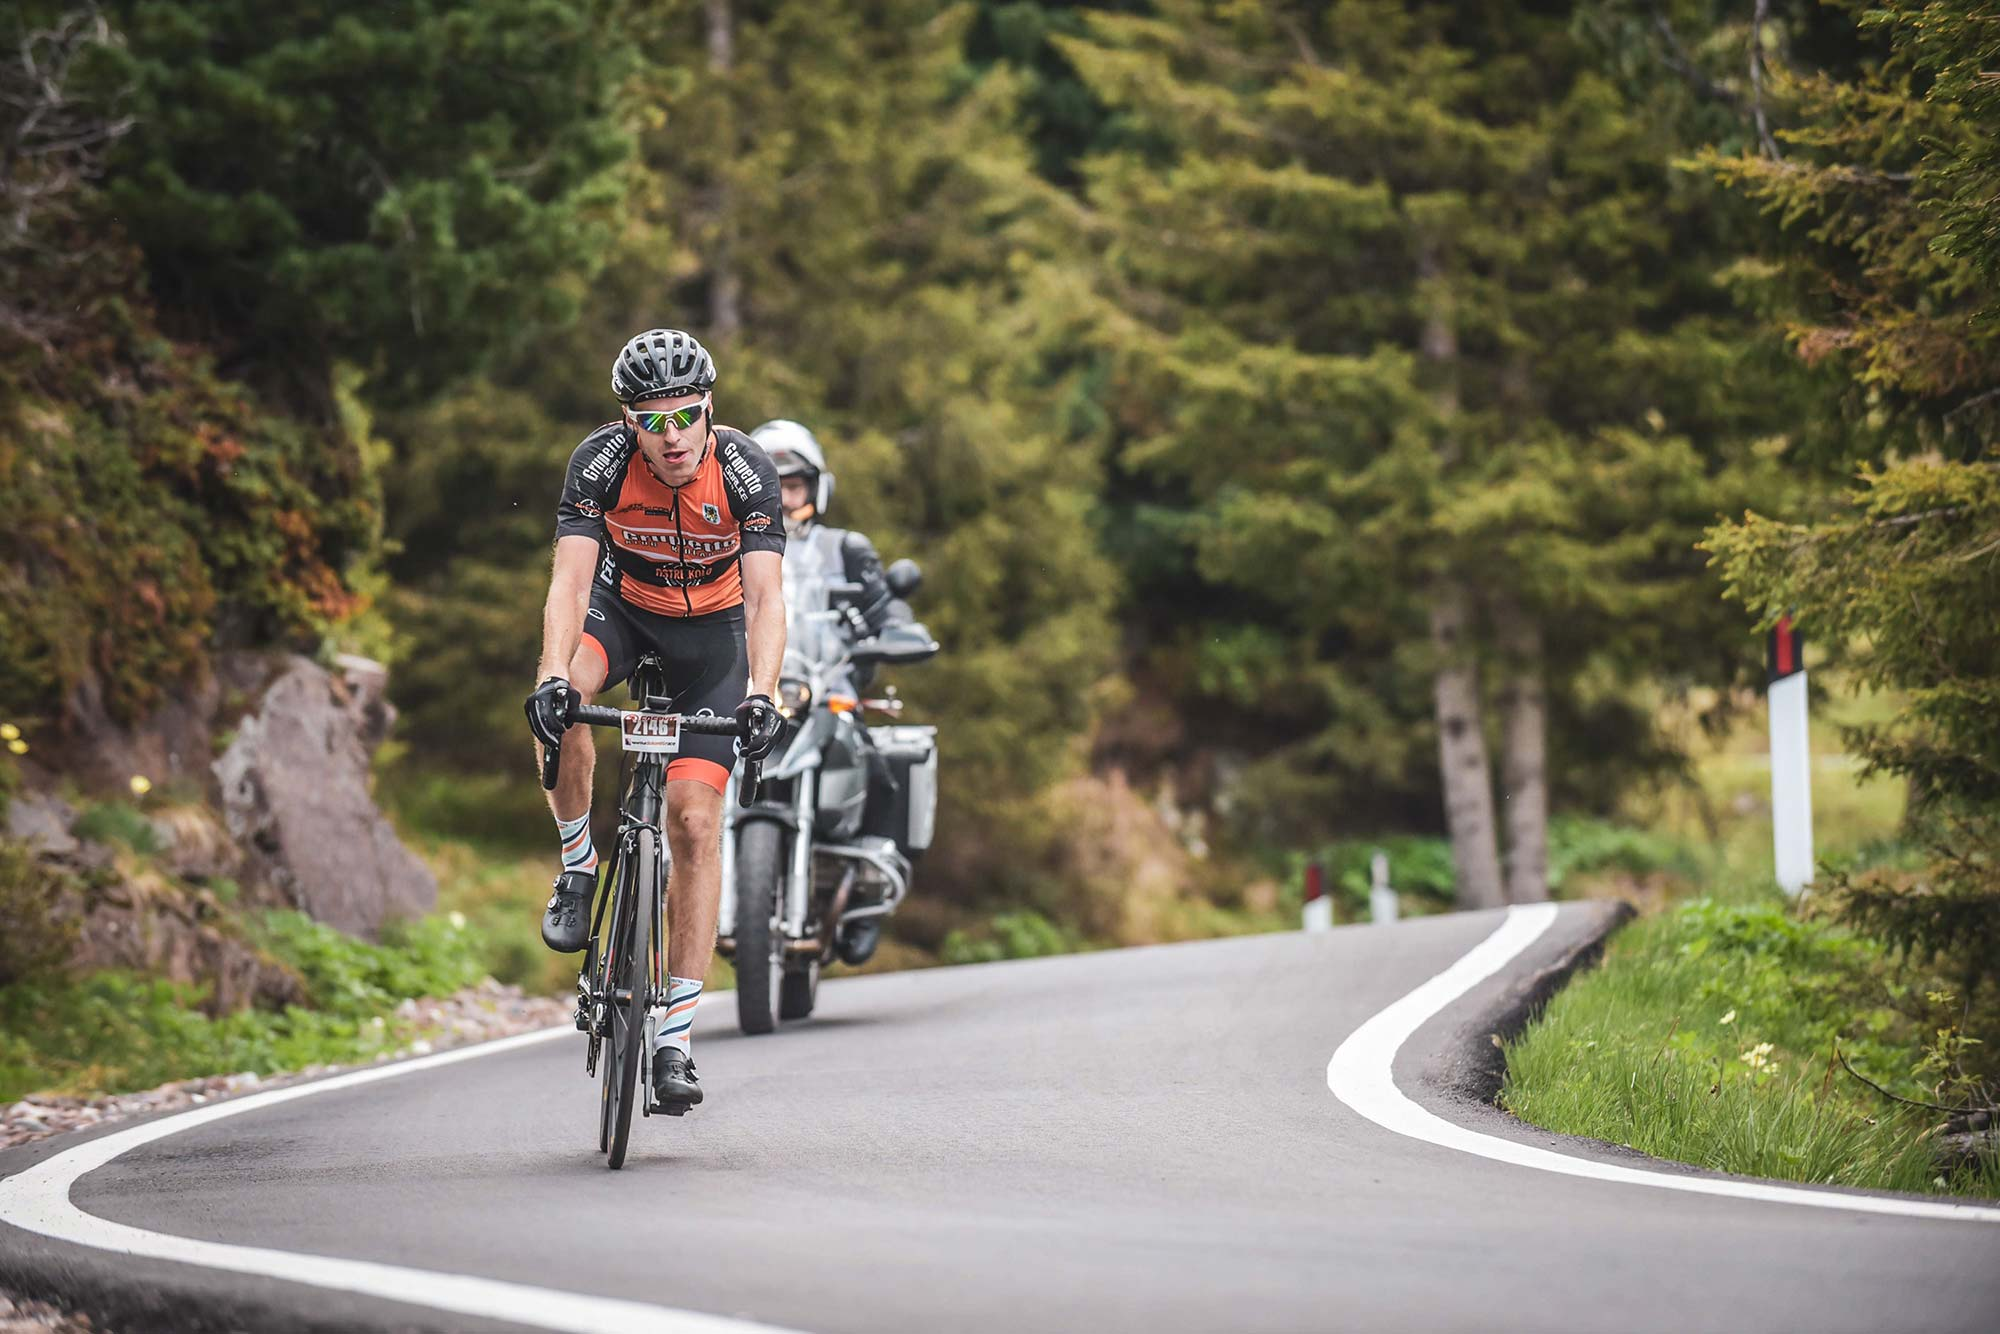 How to Prepare for a Stage Race?